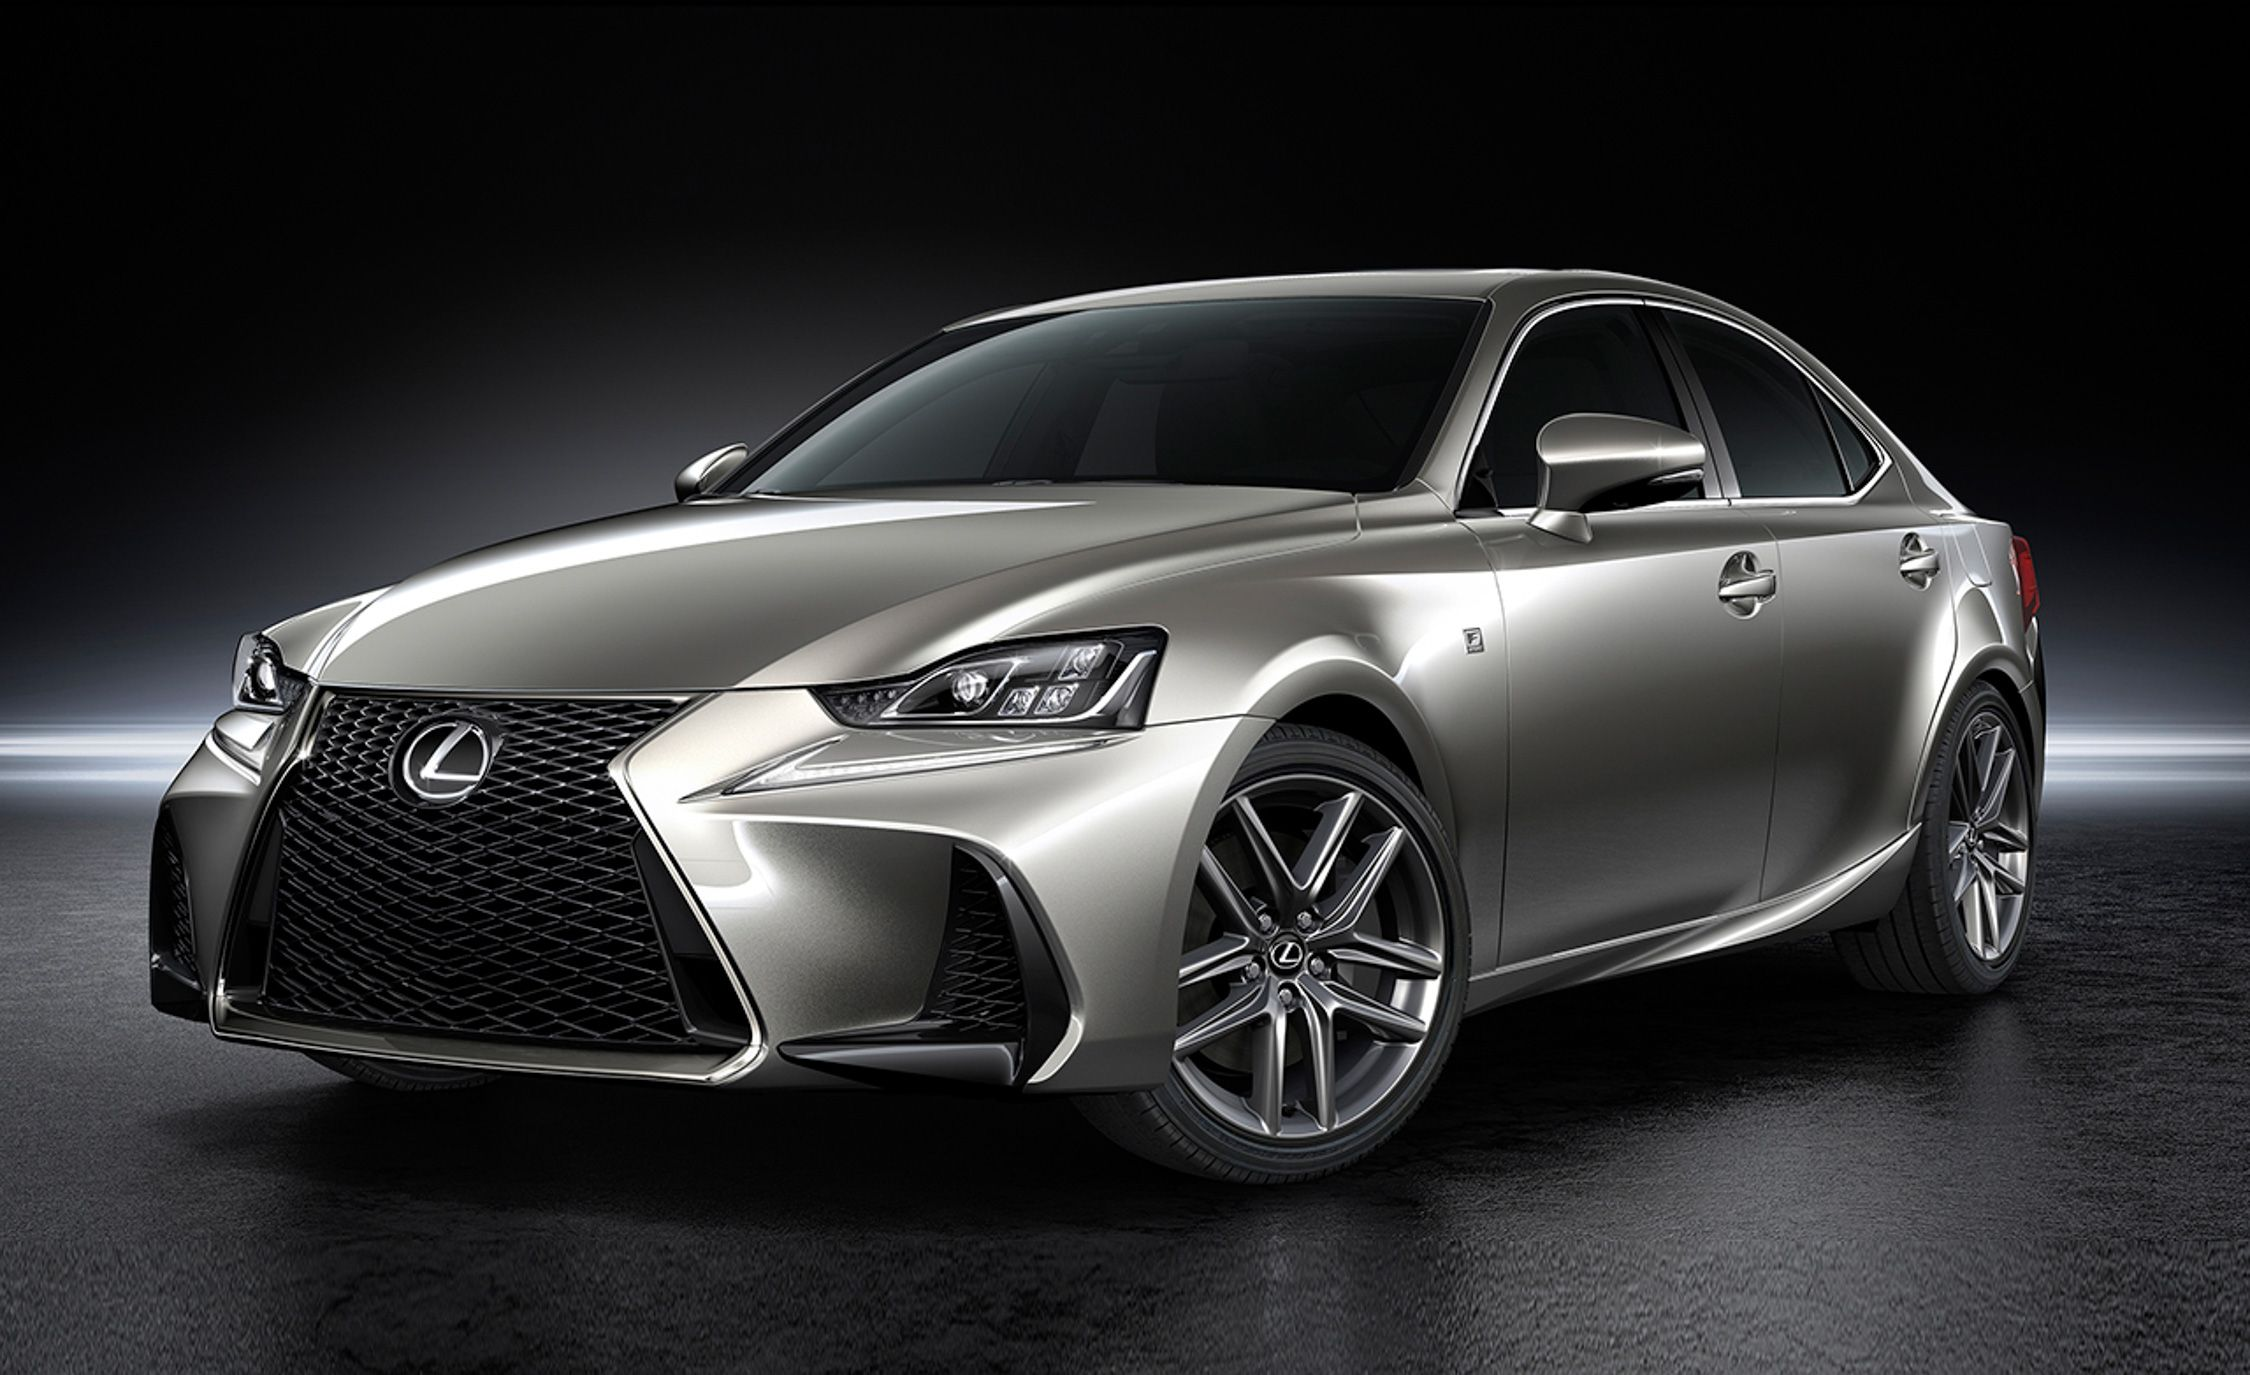 2017 Lexus IS Sedan s and Info – News – Car and Driver